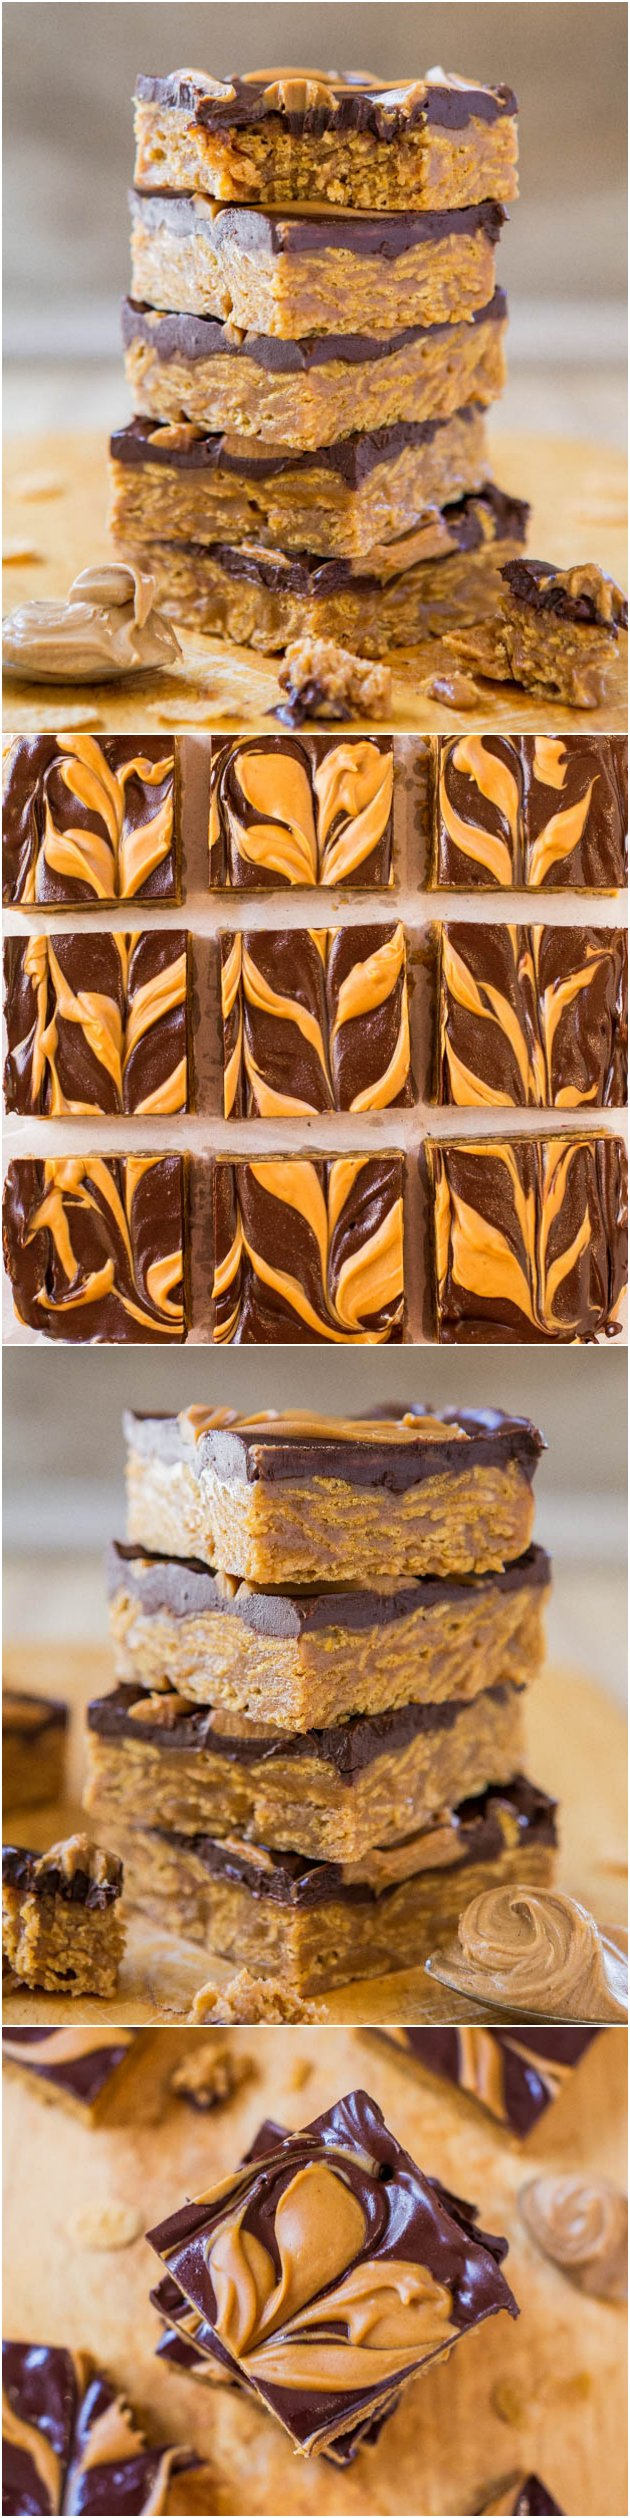 No-Bake Triple Peanut Butter and Chocolate Chewy Cereal Bars (vegan, GF) - Peanut butter is used 3 times in these rich, soft, and very chewy bars! Easy, one-bowl recipe that's ready in 15 minutes at averiecooks.com